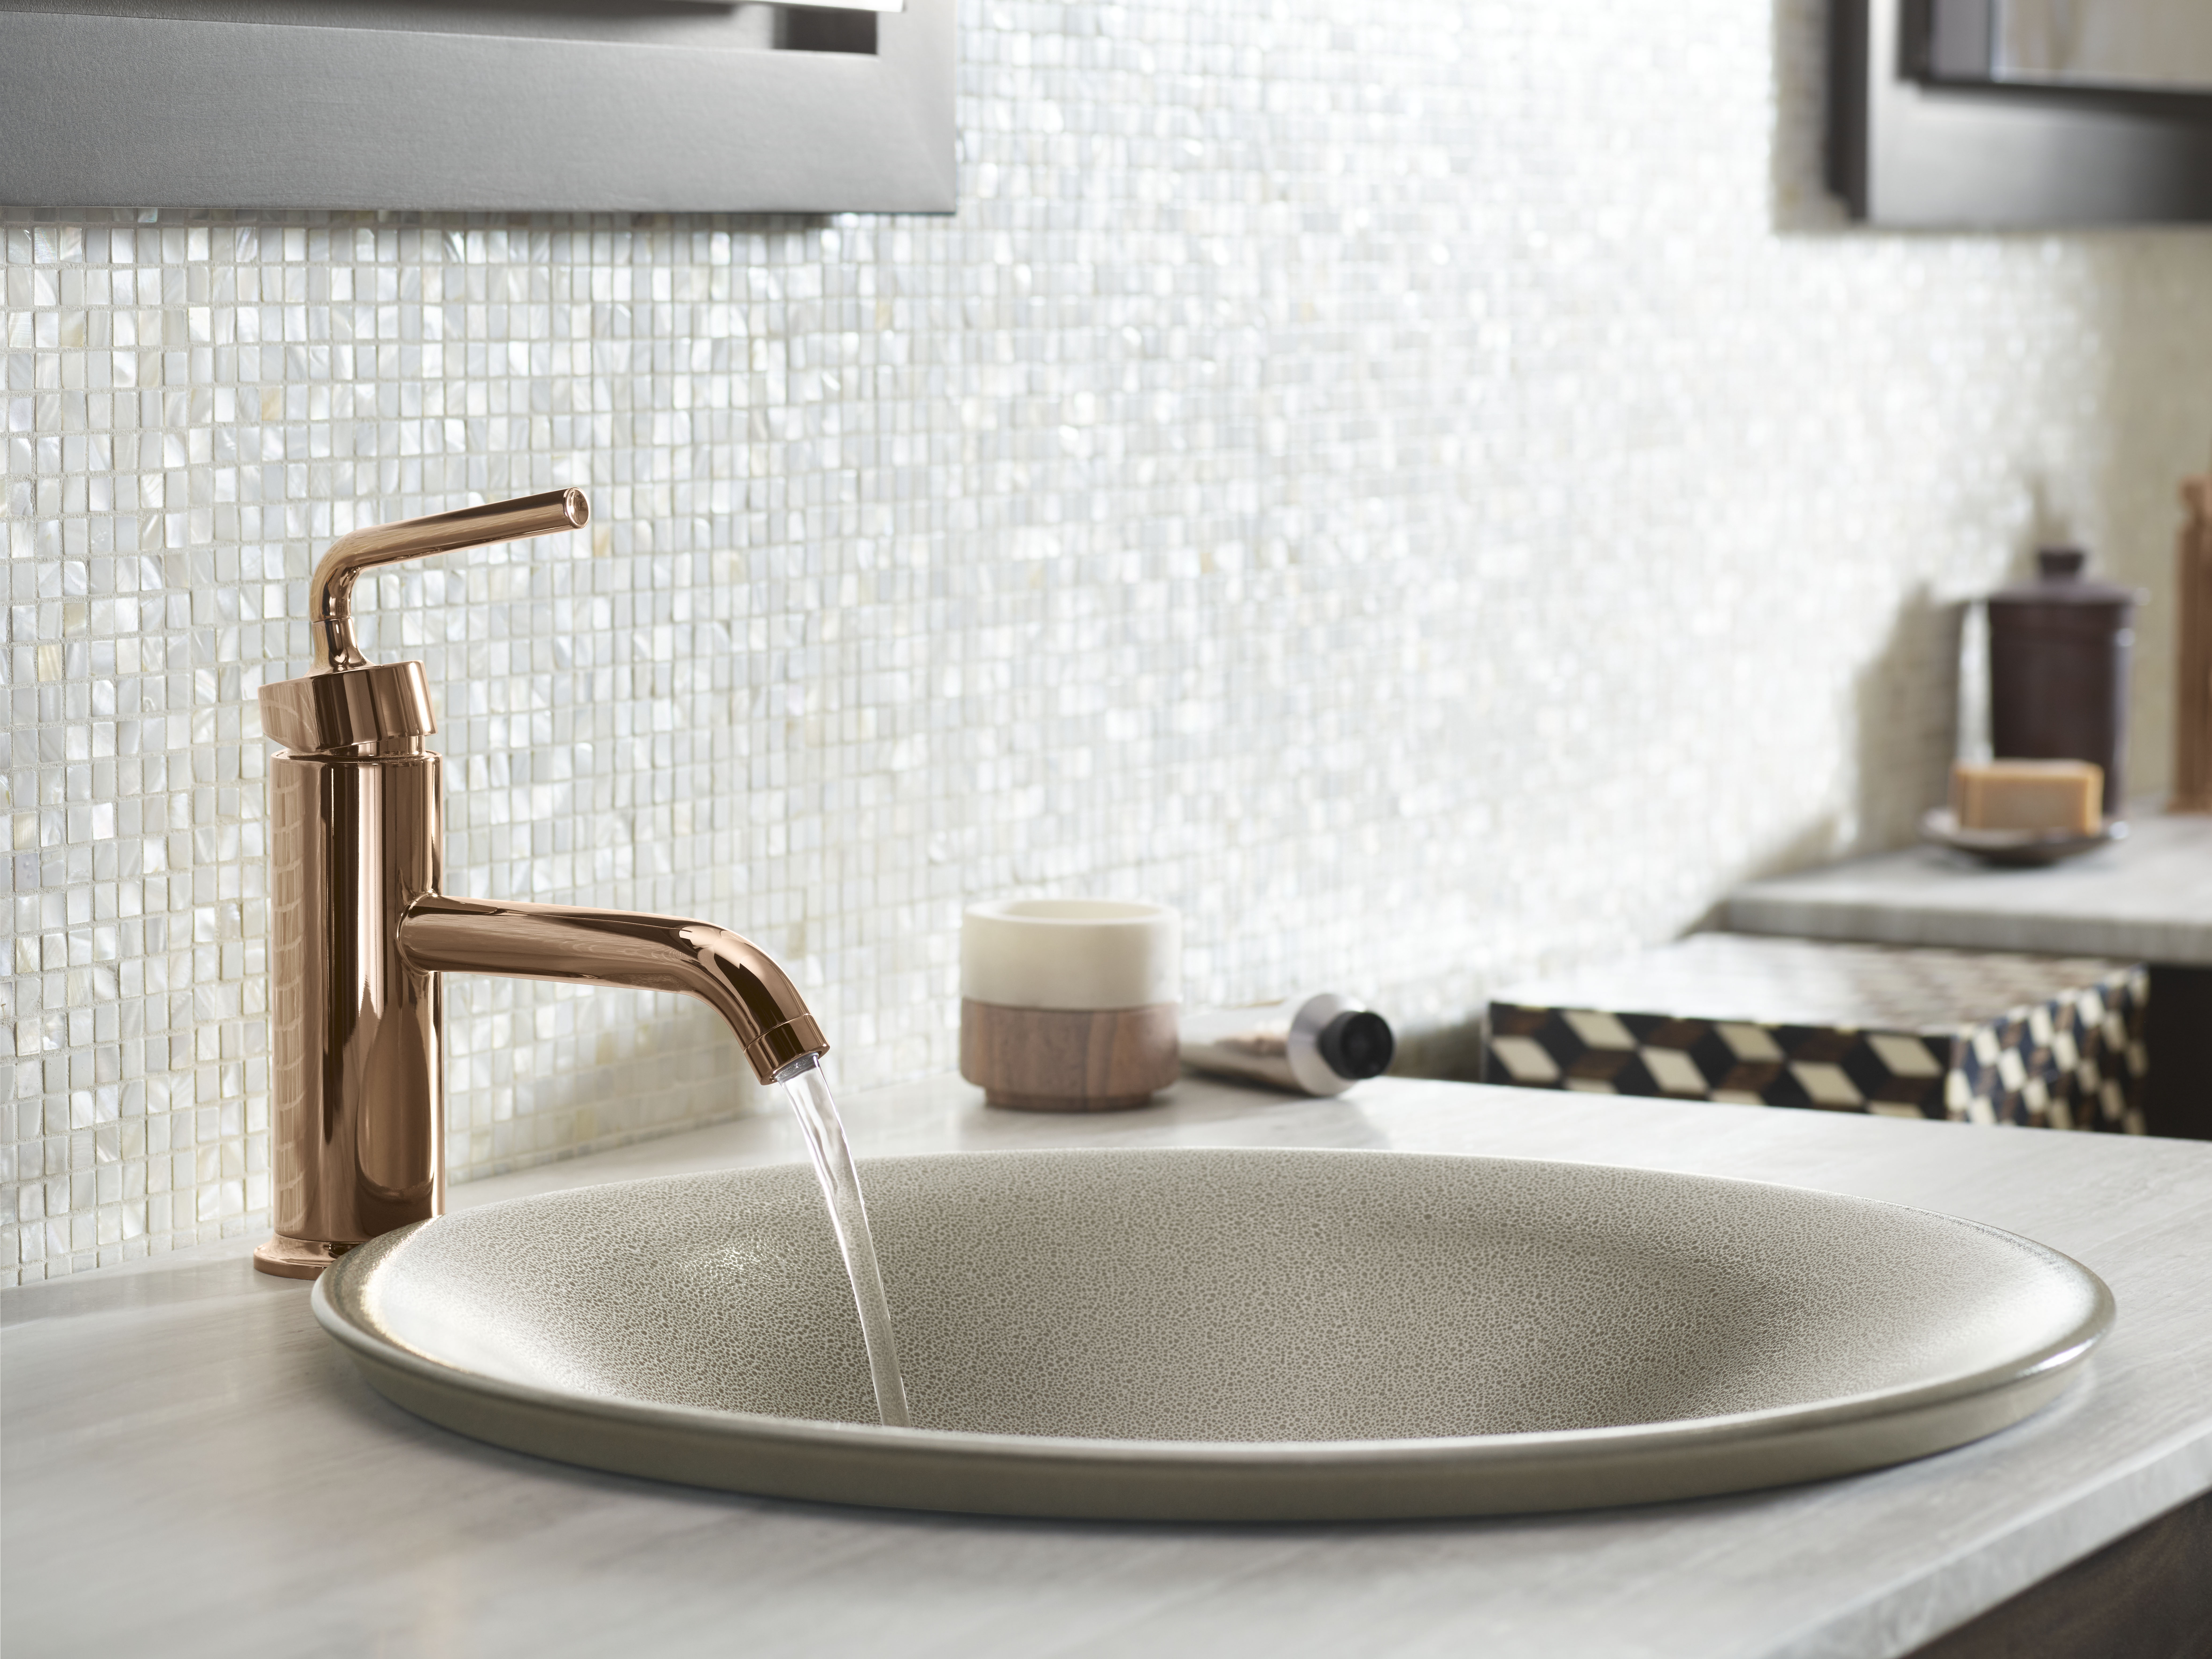 Purist Faucet     Shagreen on Carillon Vessel Sink     With its elegant pink hues, this Polished Rose Gold faucet adds sophistication to this neutral space.